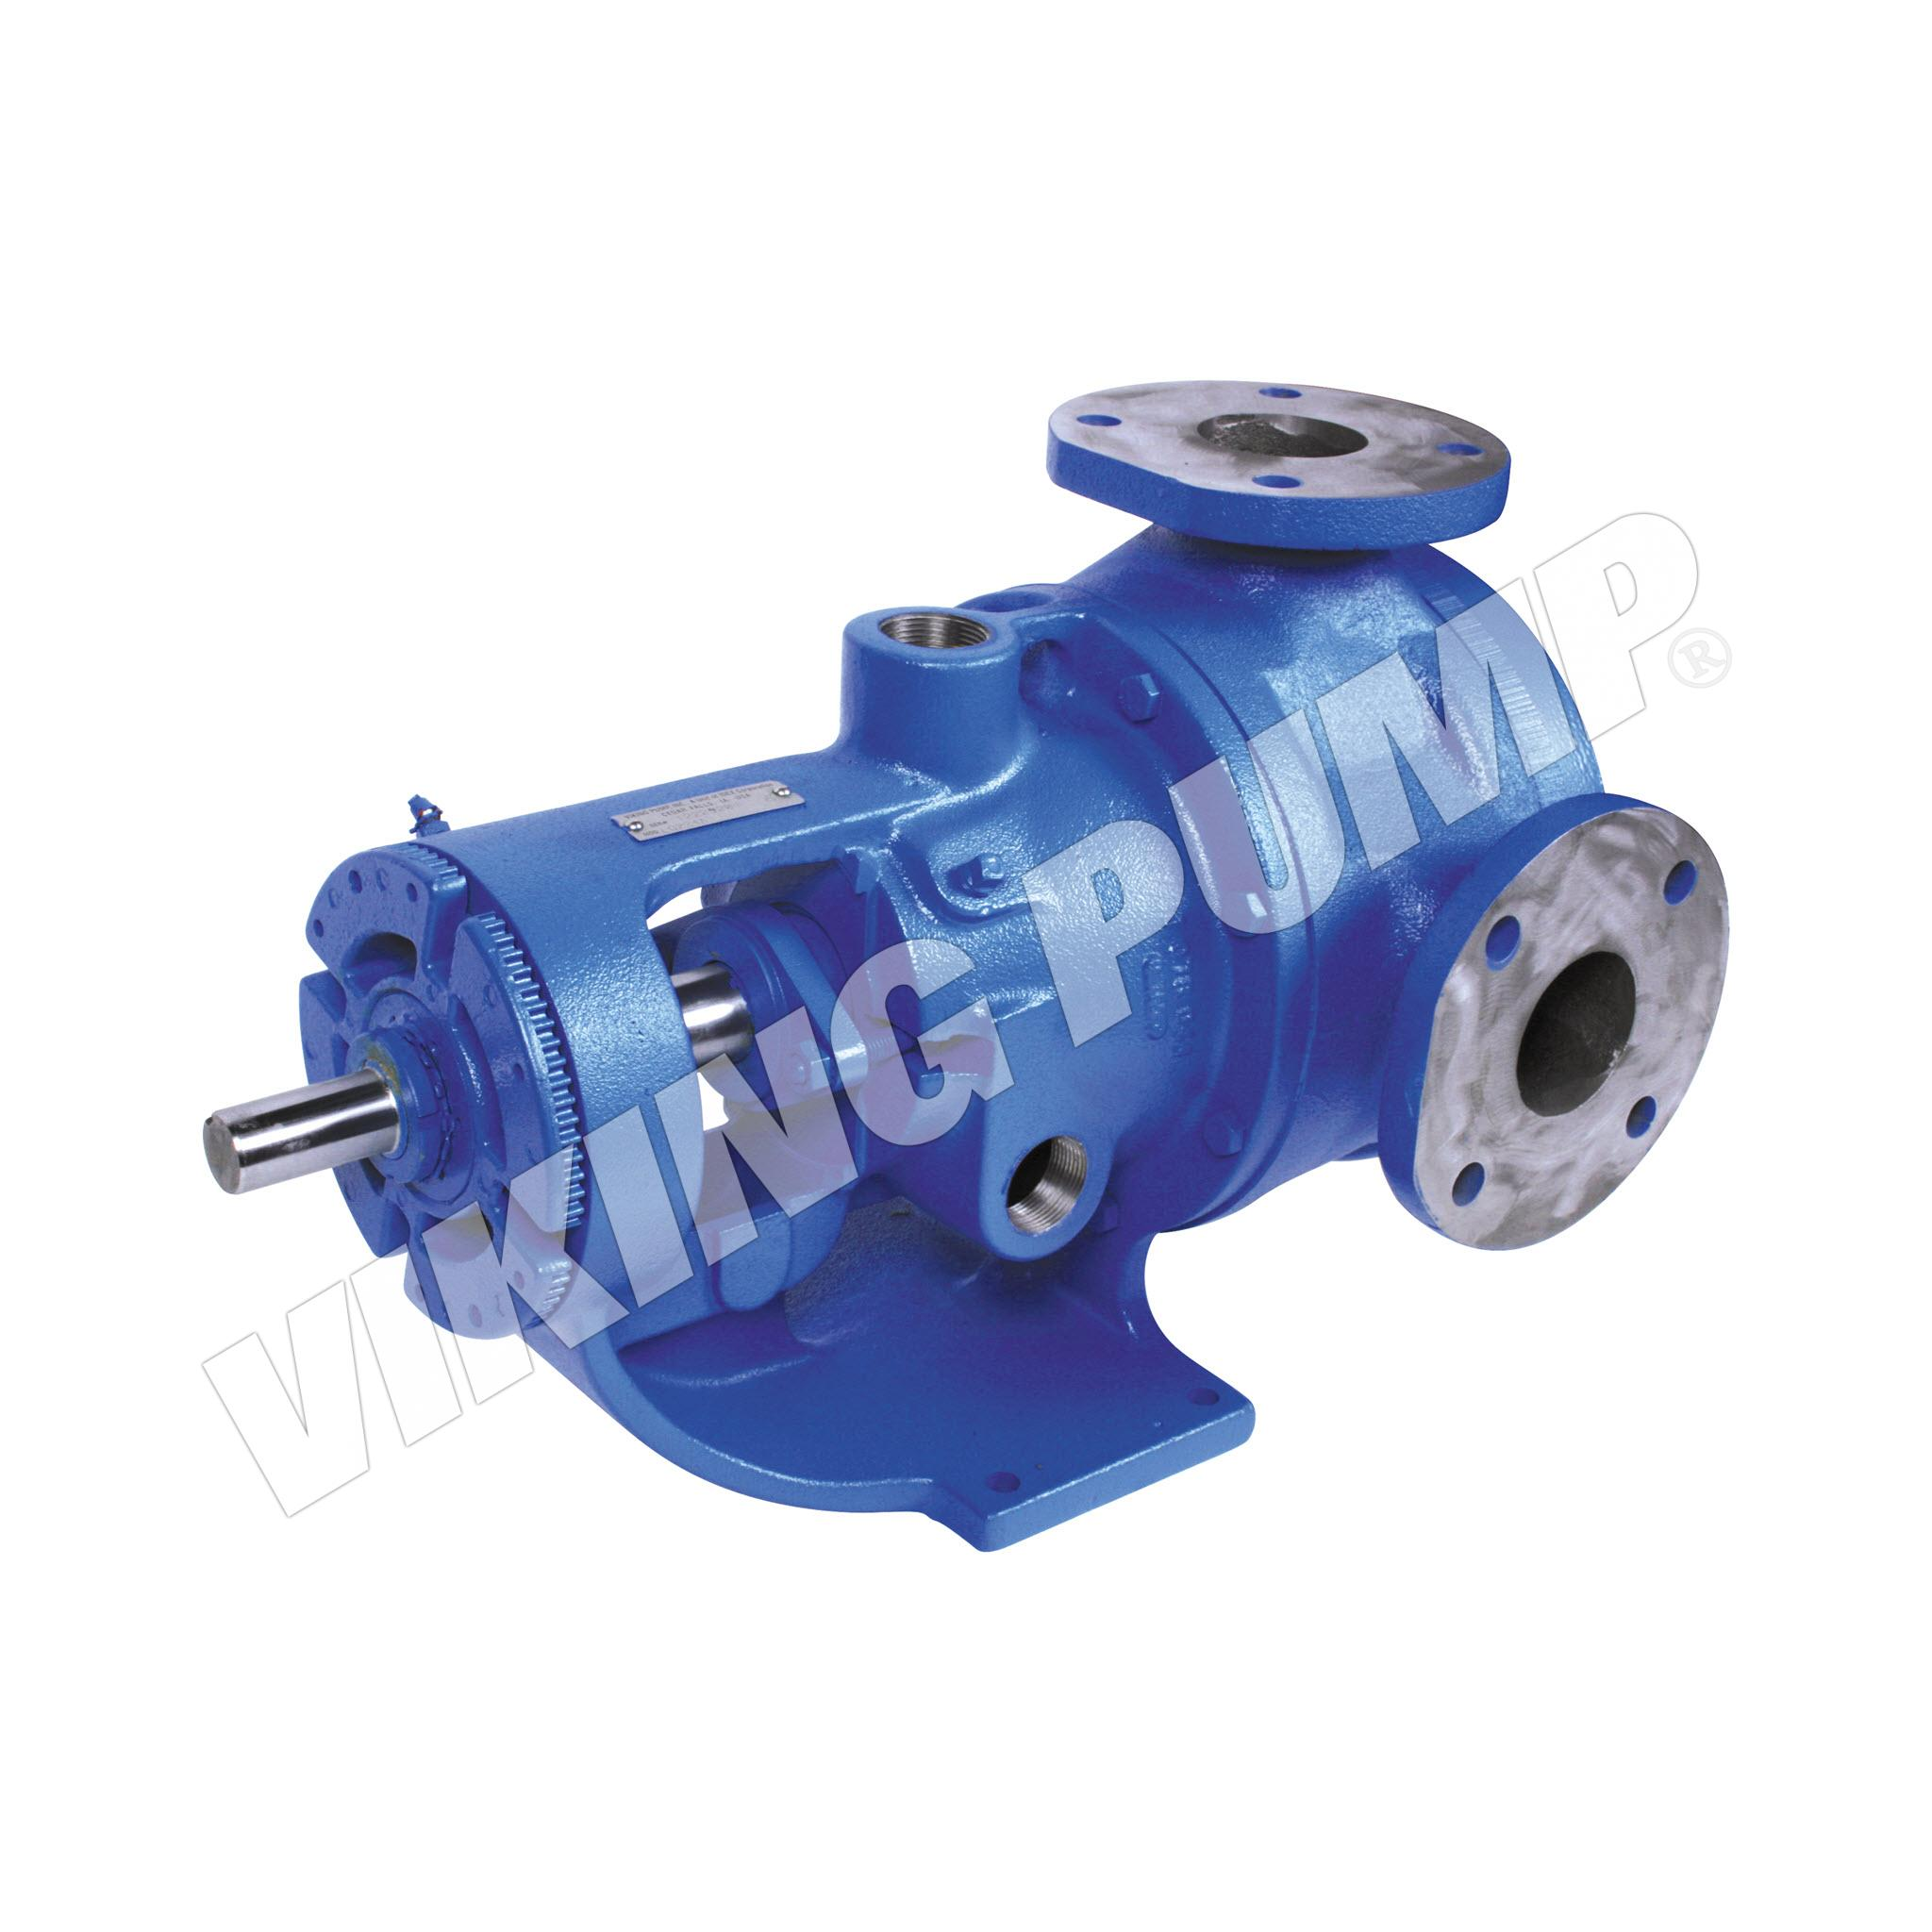 Model LQ224A, Foot Mounted, Packed Gland, less Relief Valve, Flange Port Pump